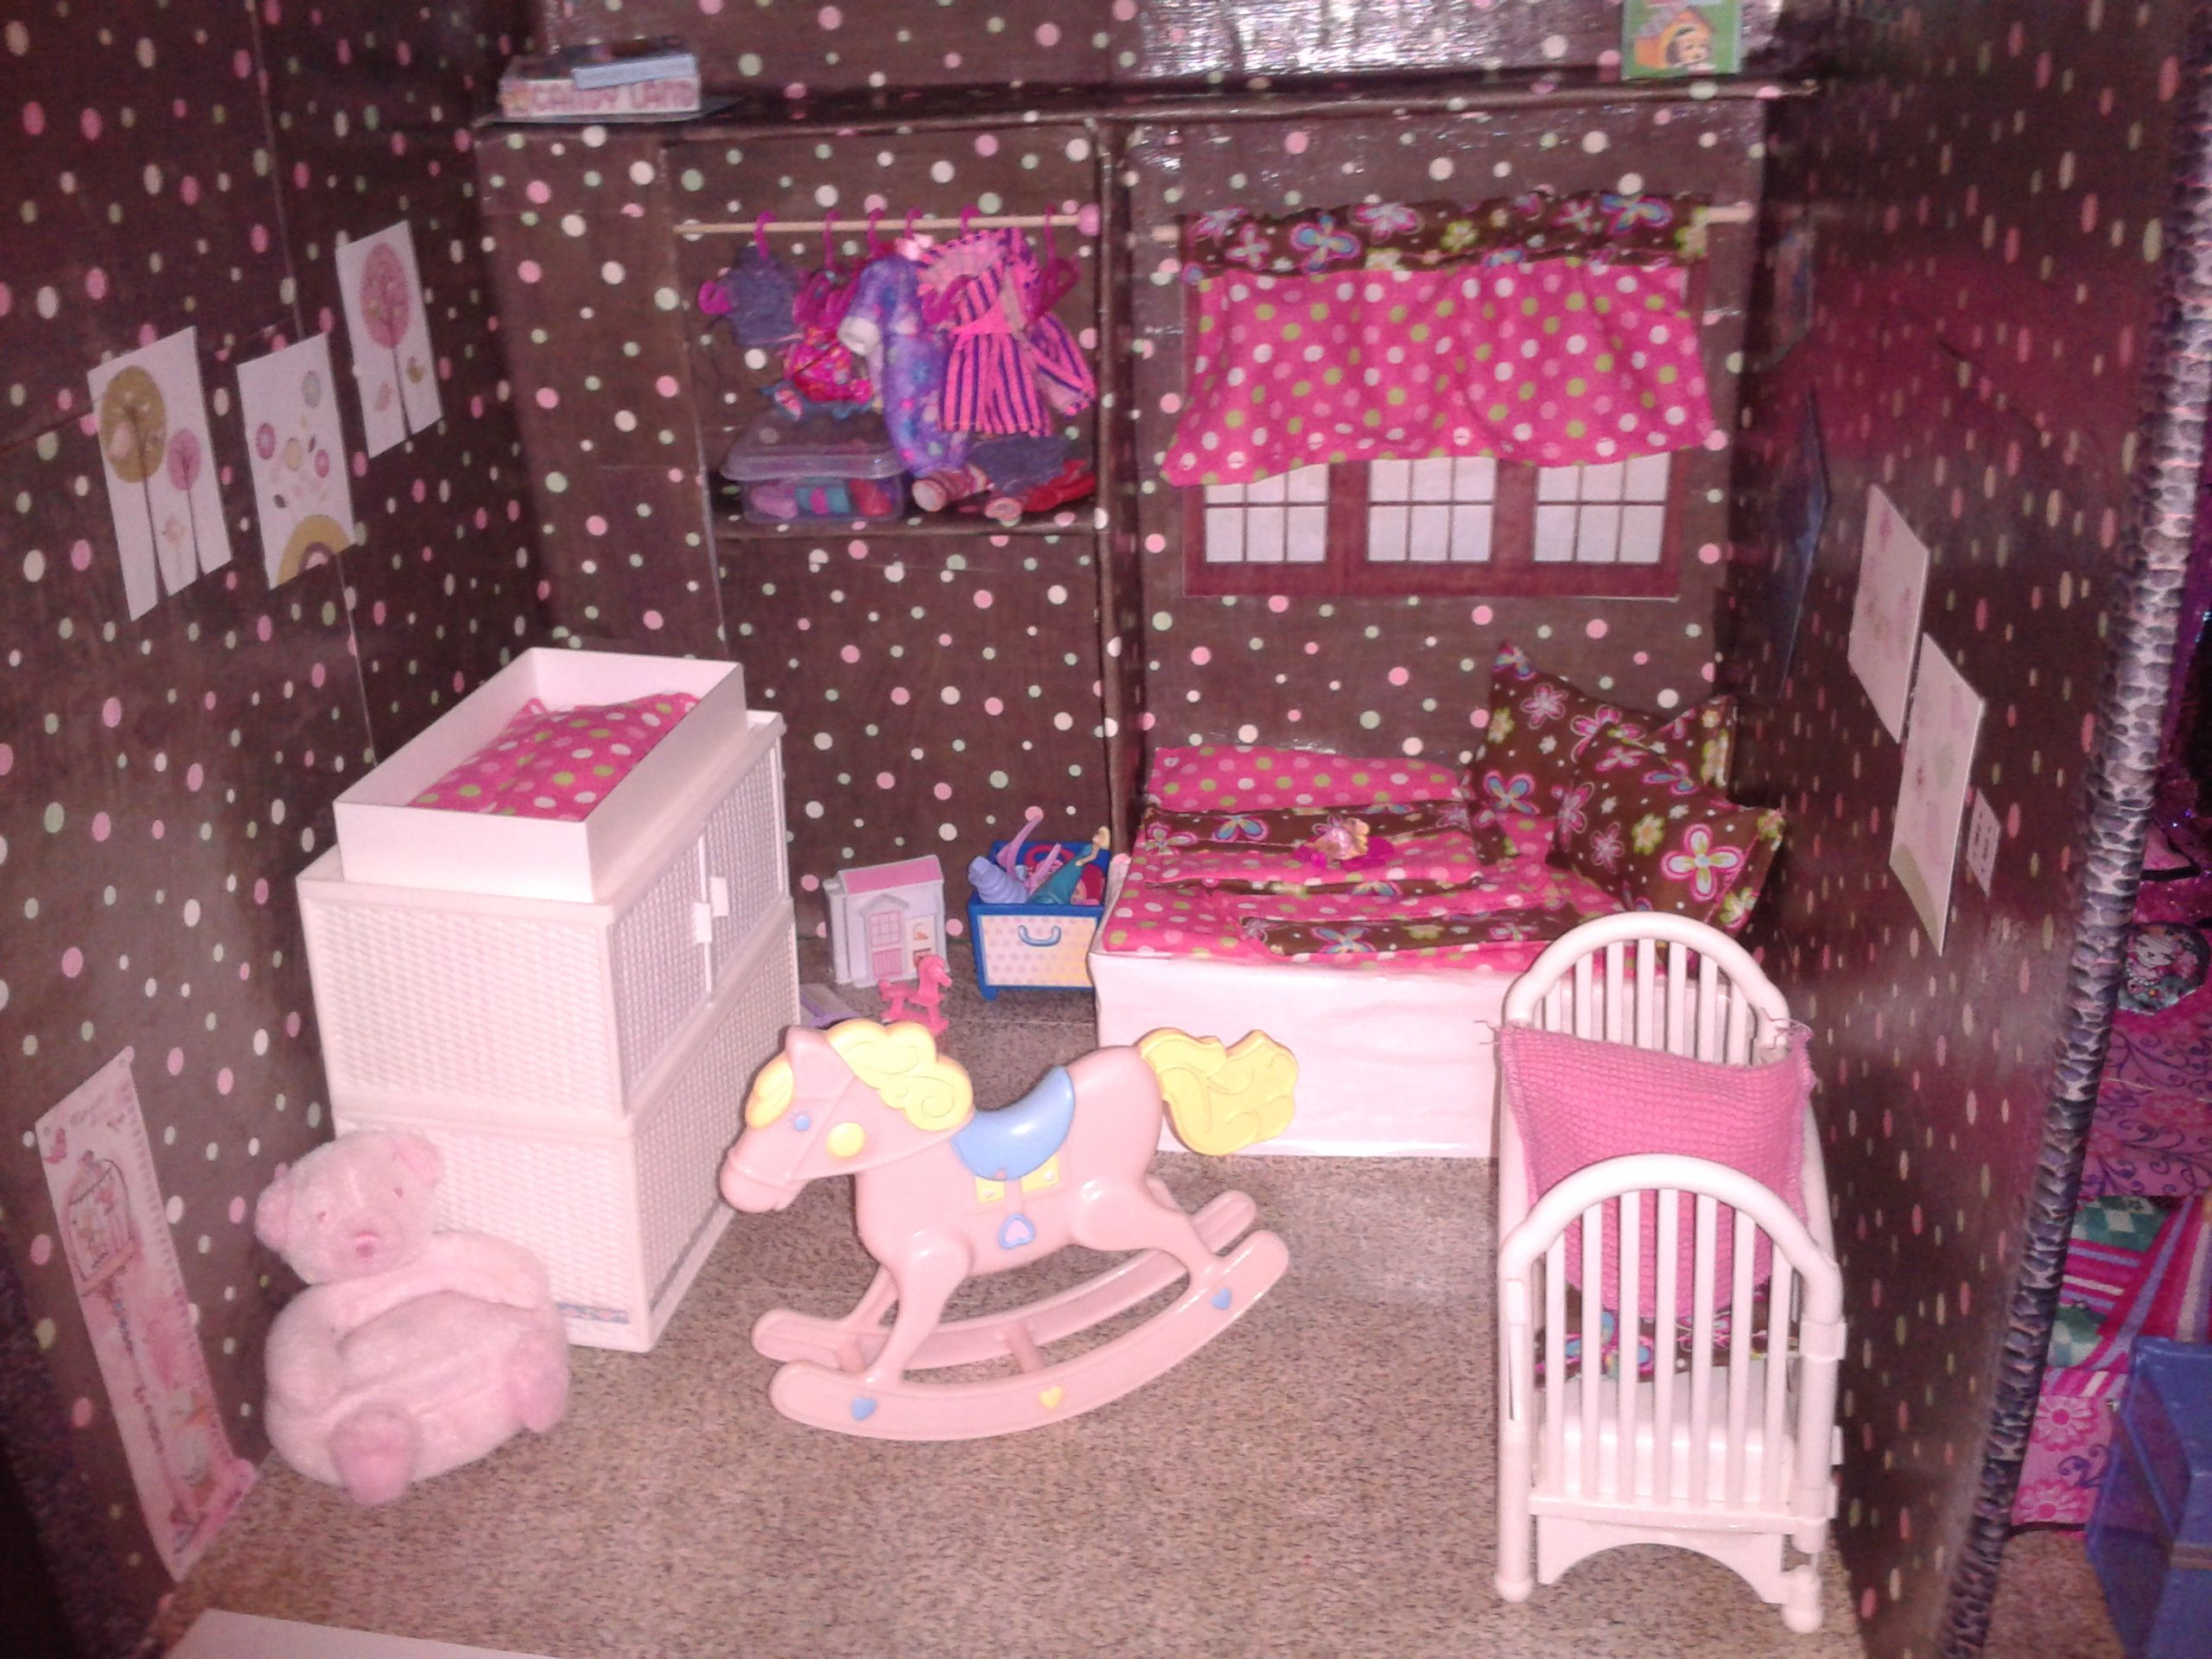 Barbie Bedroom In A Box: Chelsea, Kelly And Babies Room.